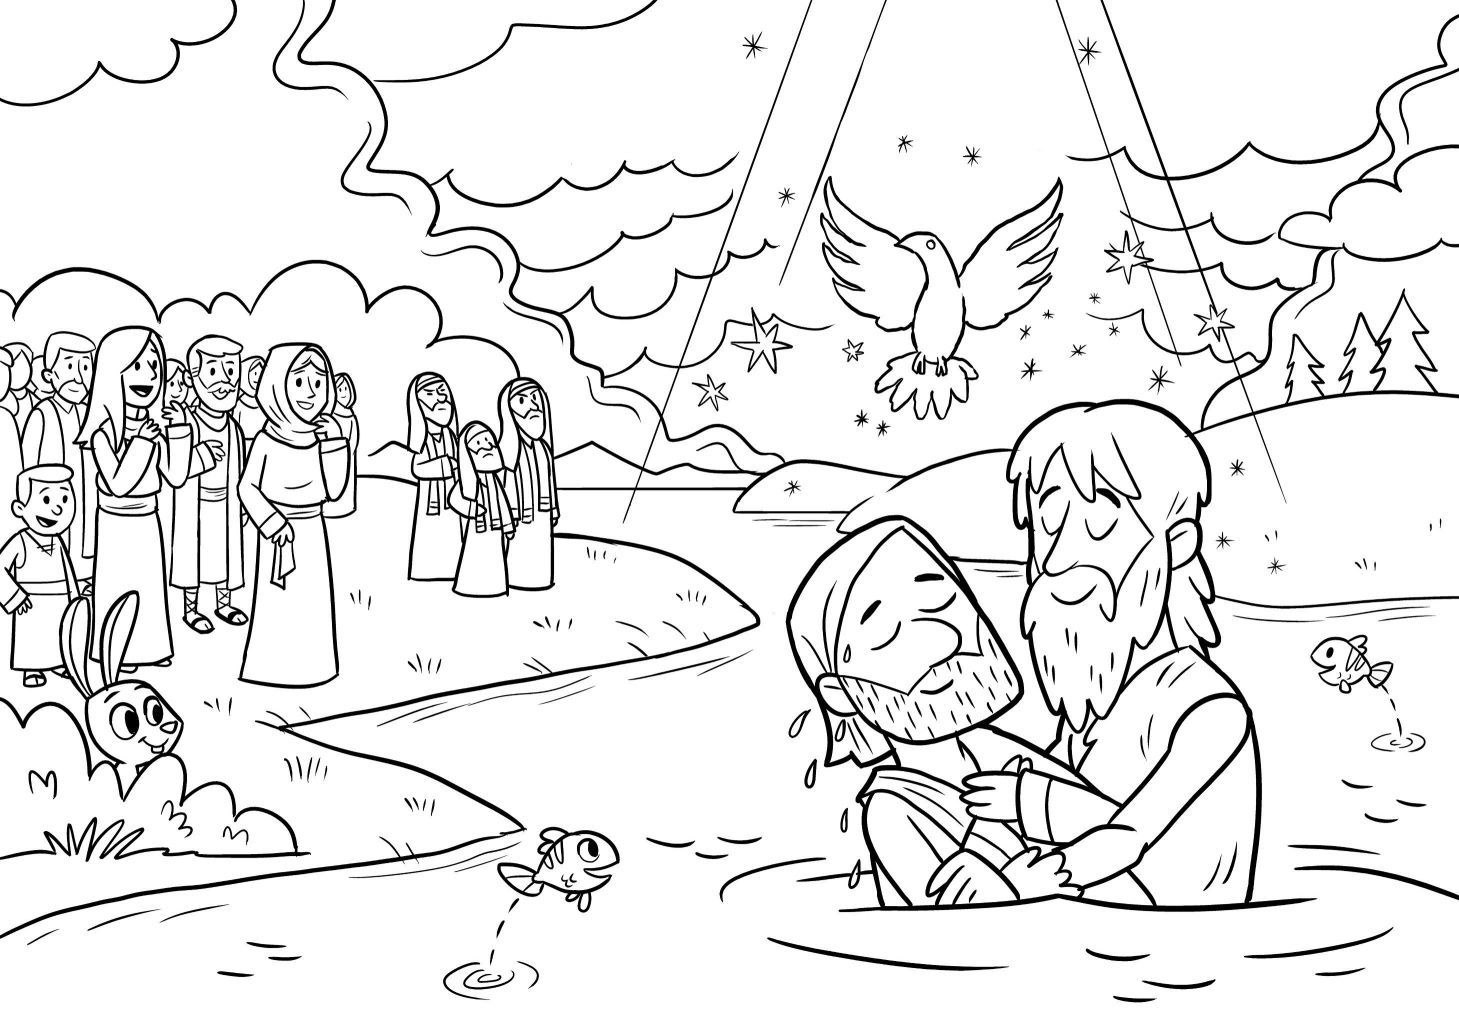 Jesus Being Baptized Coloring Pages G Abstract Baptism Of Page Amazing Is Bible App For Kids A Jesus Coloring Pages Sunday School Coloring Pages Coloring Pages